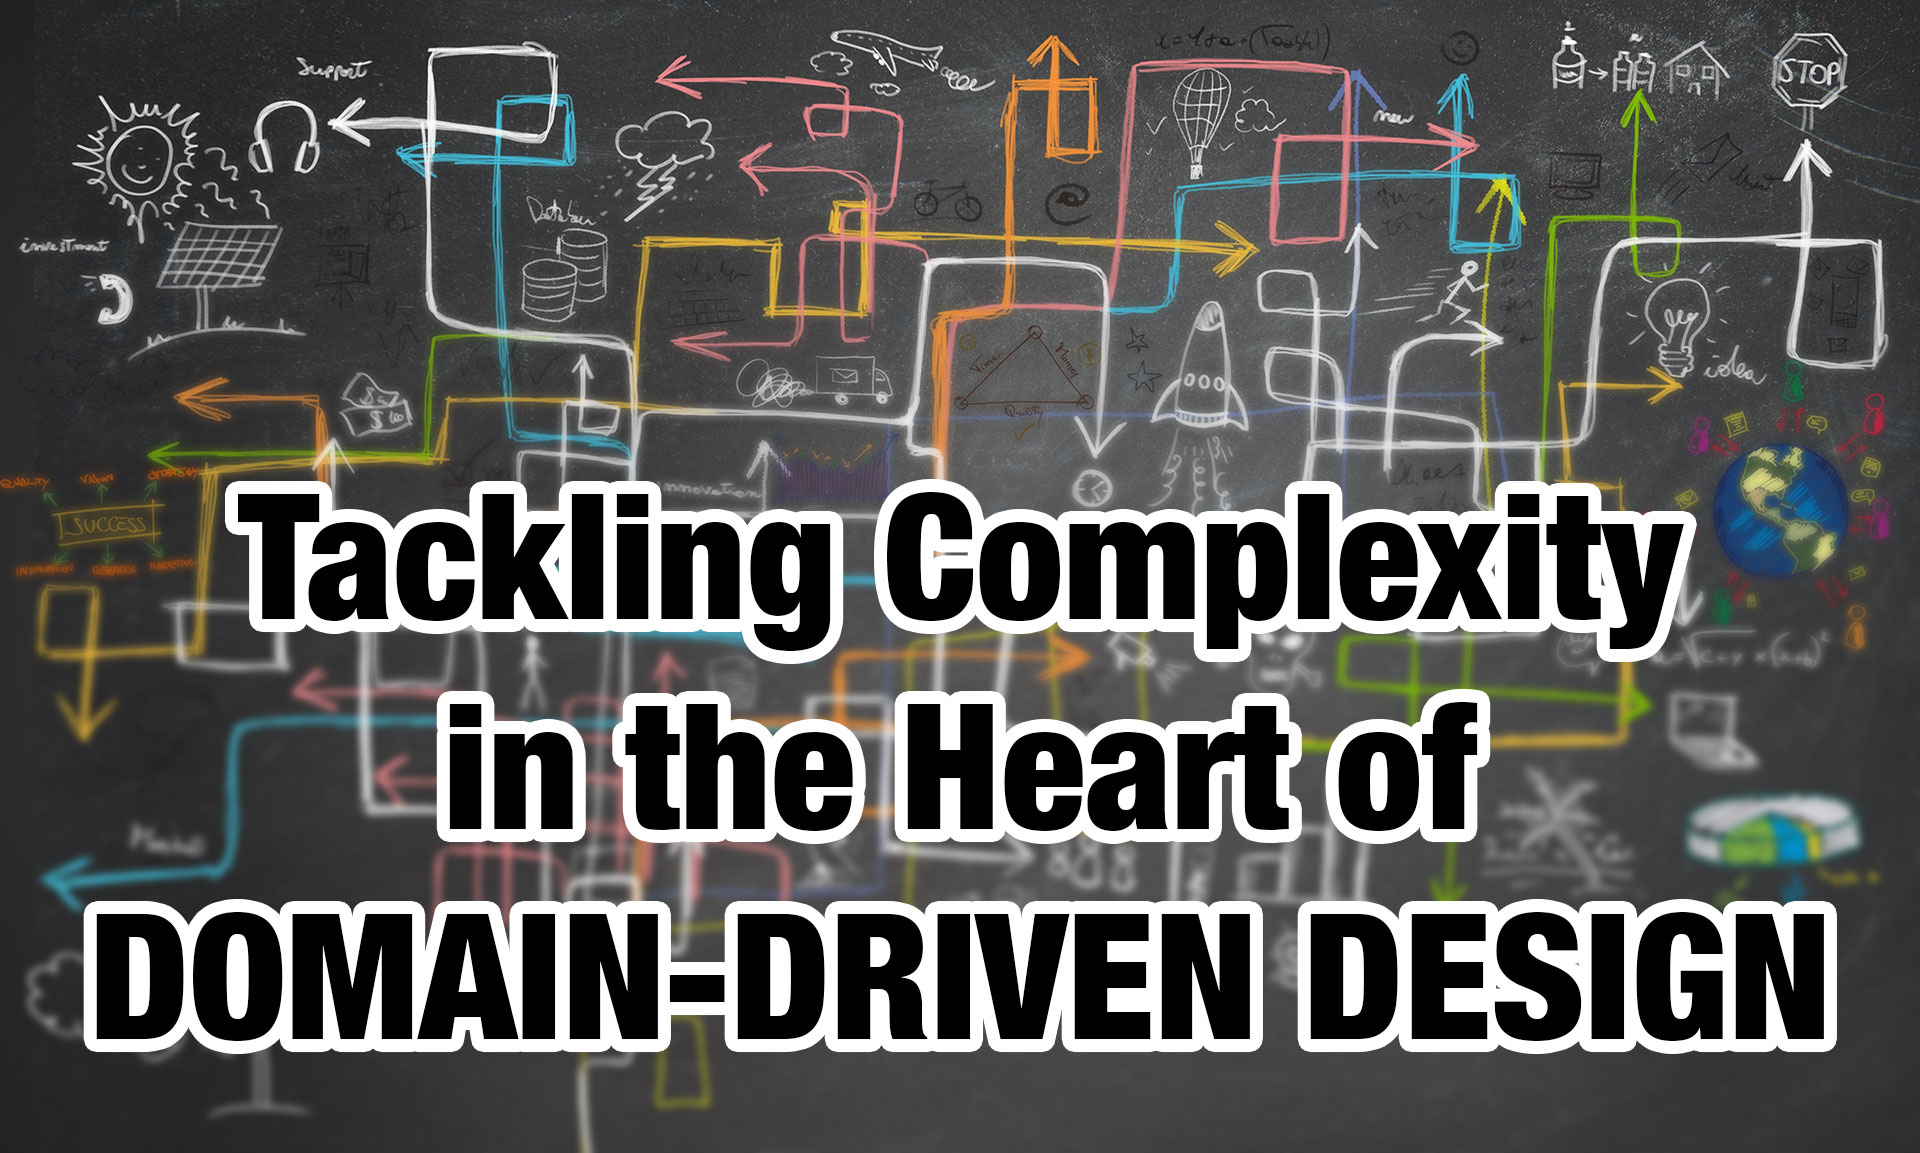 Tackling Complexity in the Heart of Domain-Driven Design